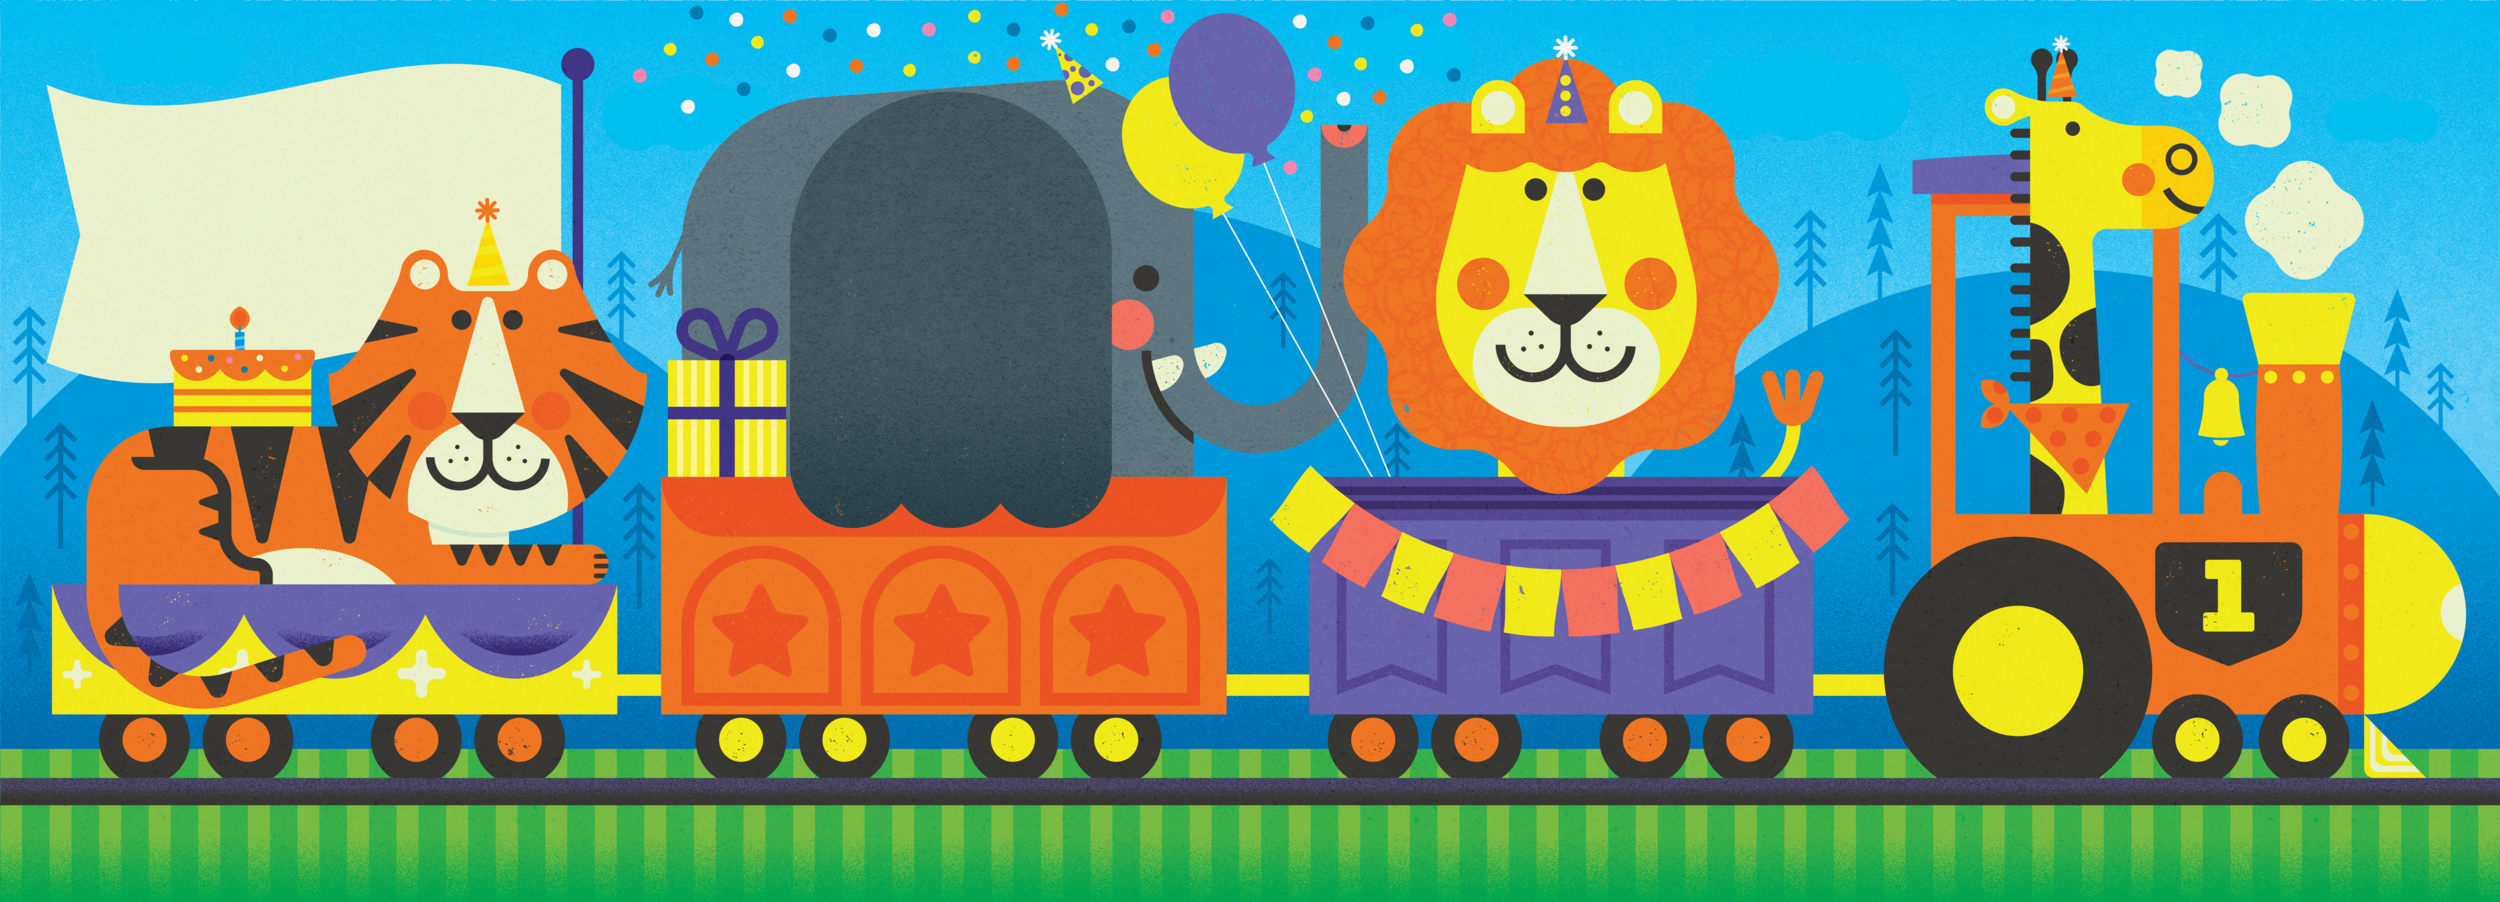 Birthday-Train-Circus-Steve-Mack-2019-01.png